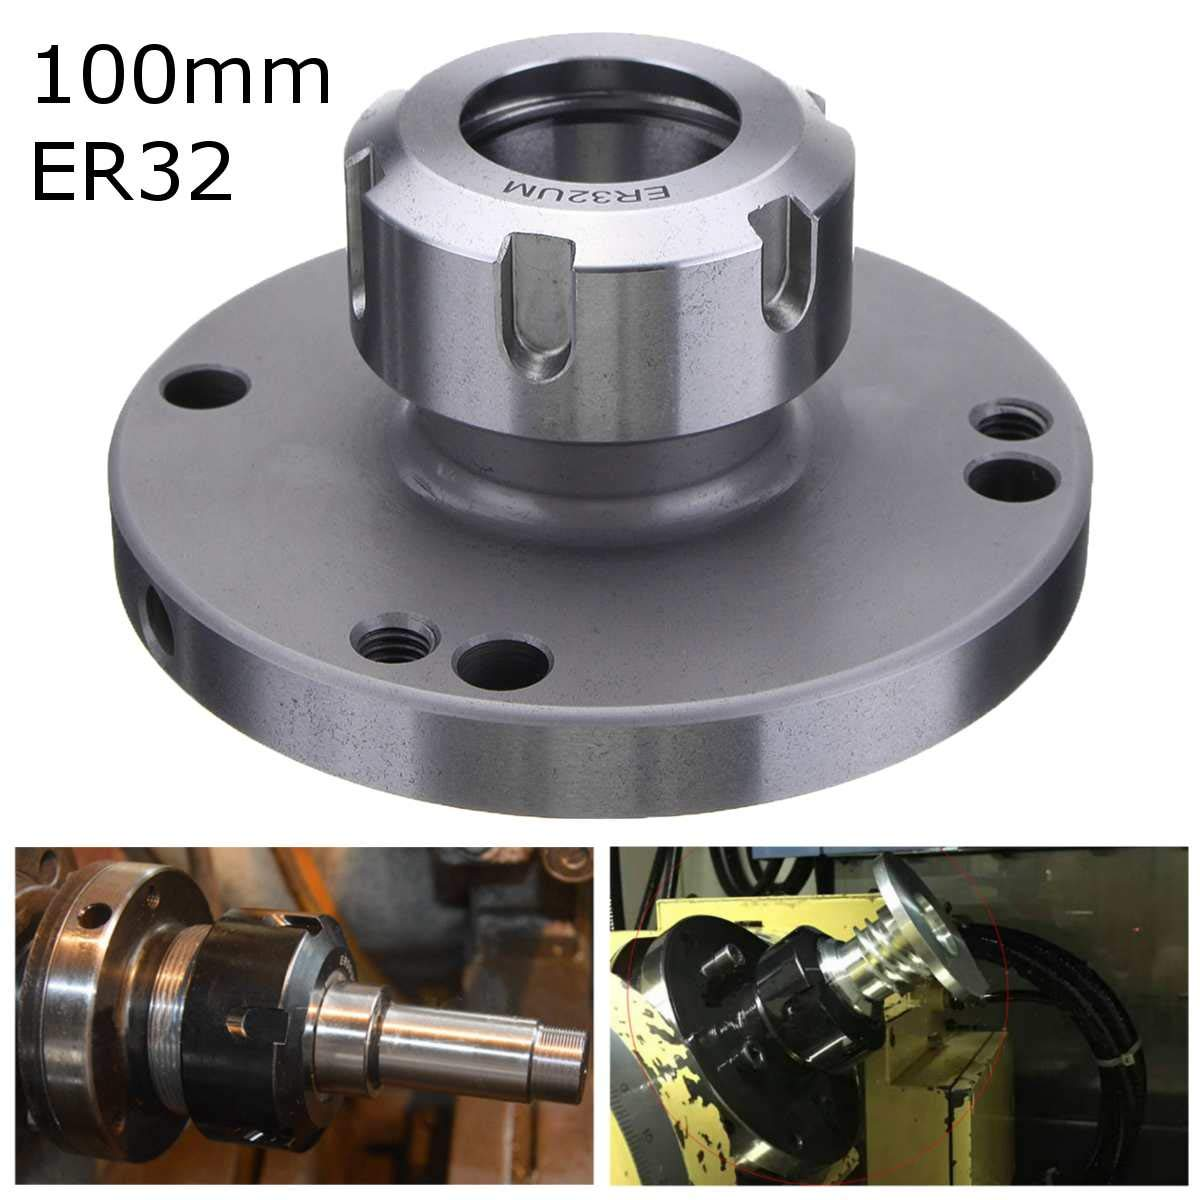 100mm Diameter ER-32 Collect Chuck High Speed Steel /& 41Cr4 Milling Tools Parts